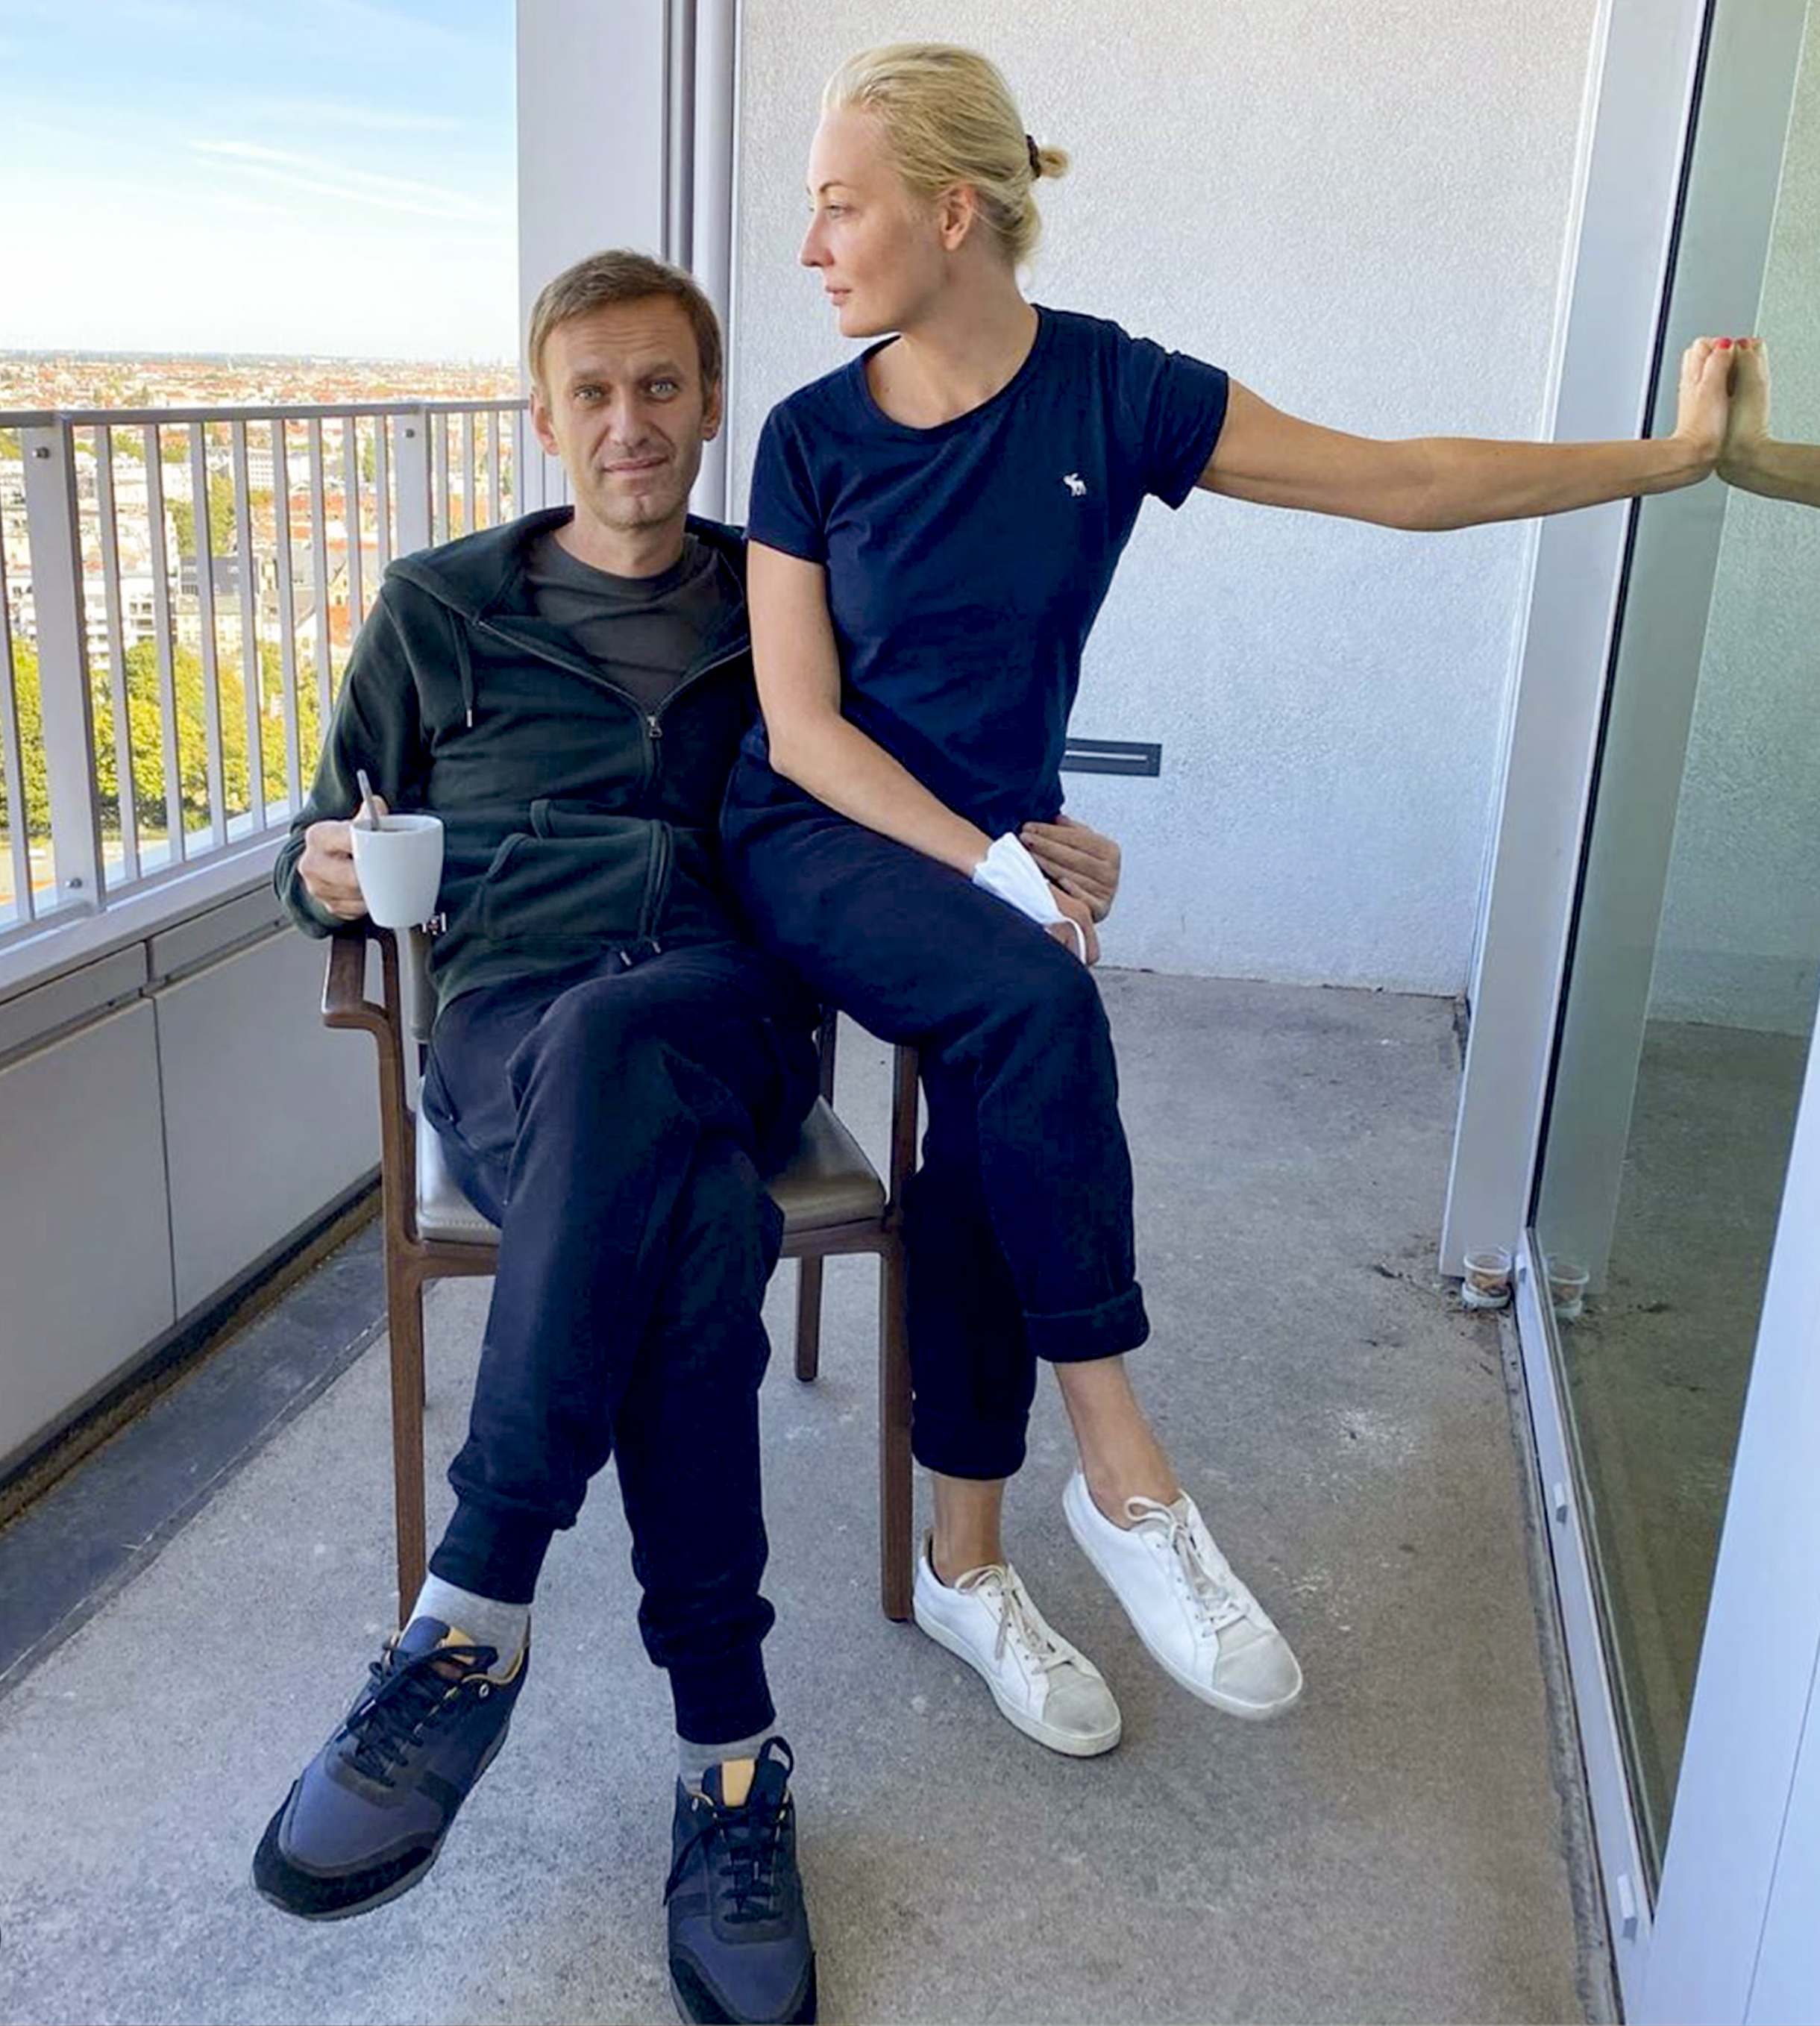 Russian opposition leader Alexei Navalny and his wife Yulia pose for a photo in a hospital in Berlin